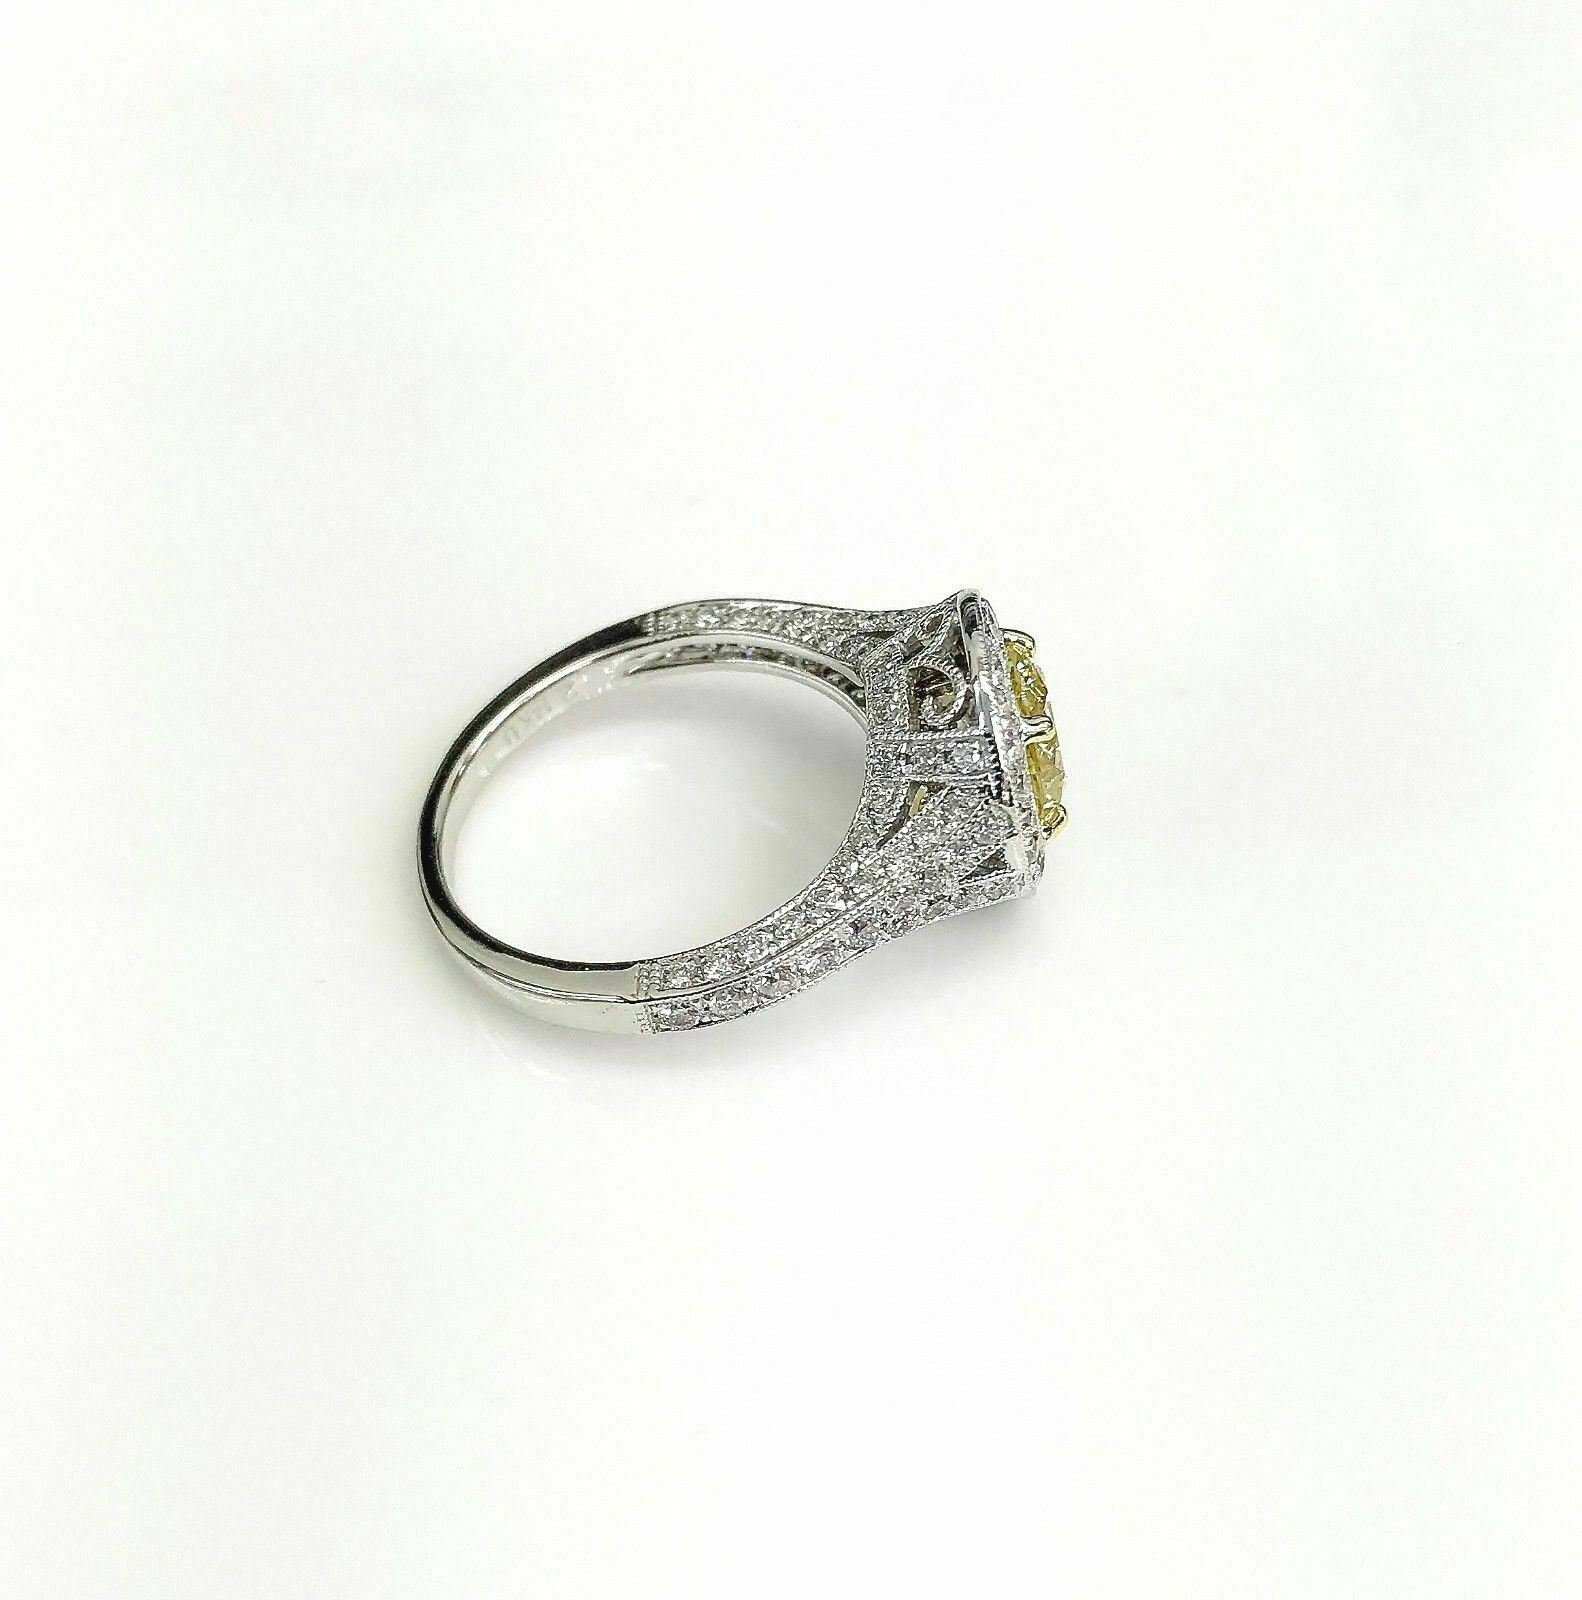 2.10 Carats t.w. Fancy Yellow Diamond Halo 3 Sided Pave Engagement Ring 18k